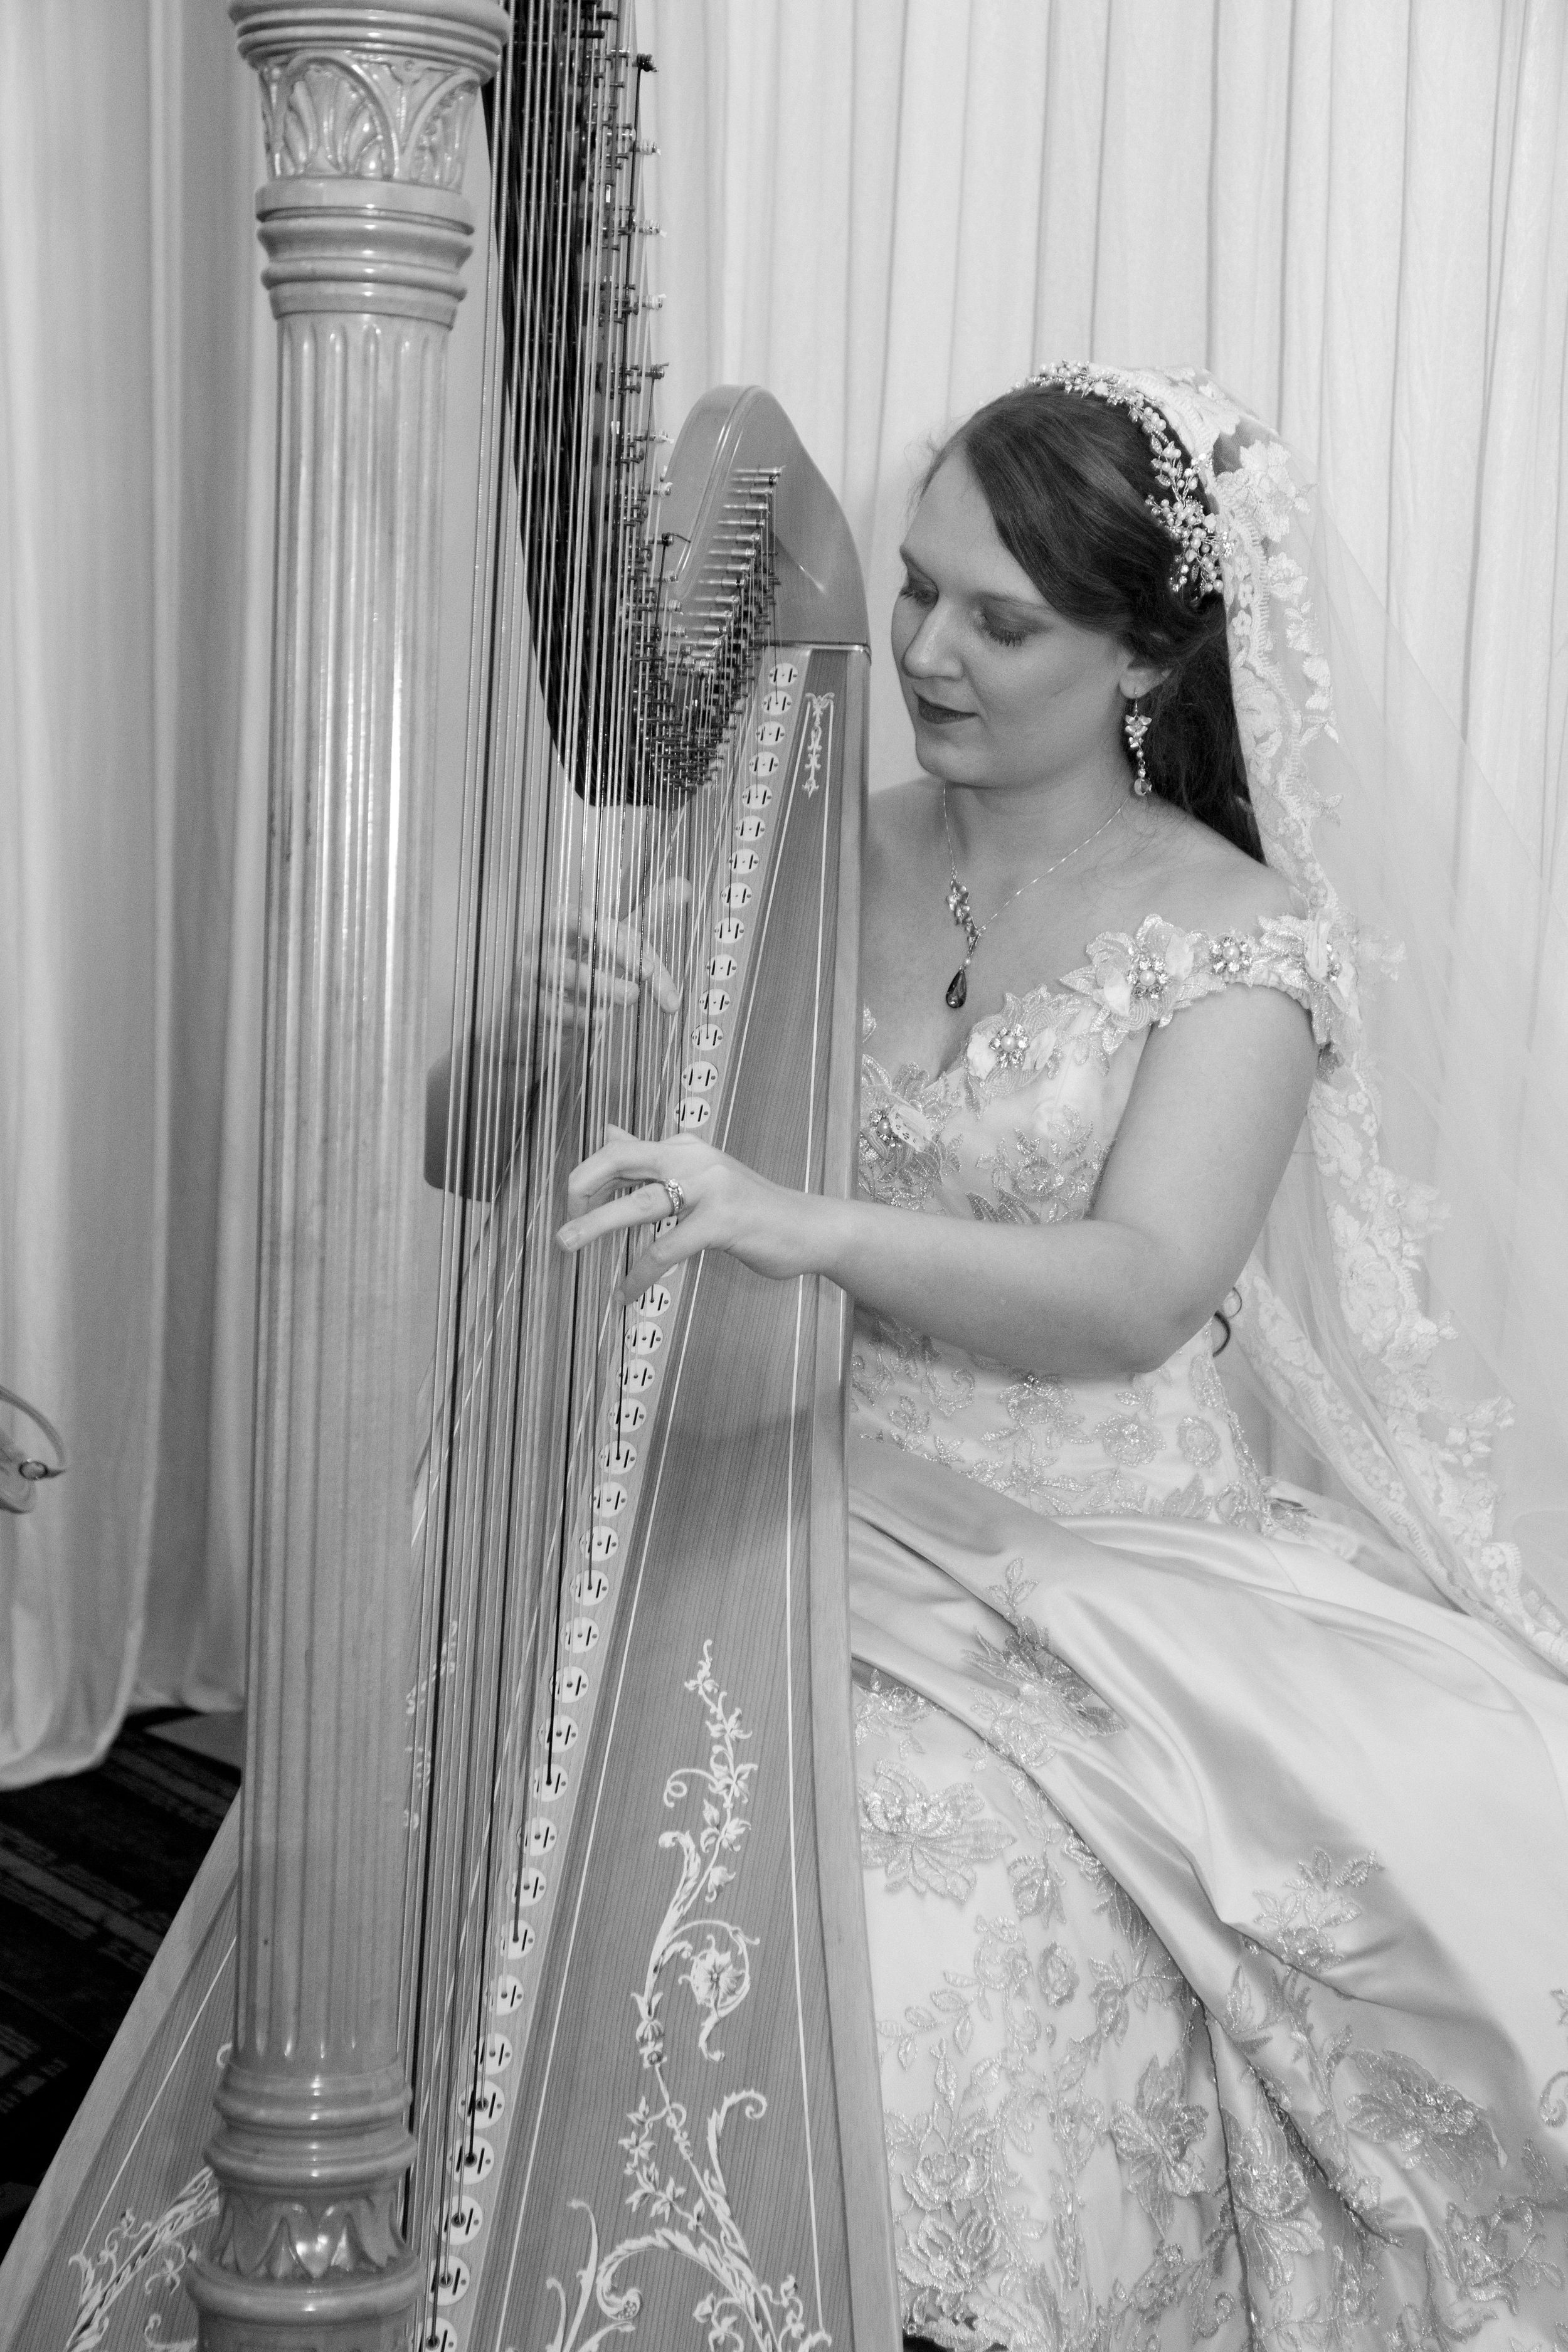 (Oh, and here's a photo from the wedding! Christa Grix was kind enough to play for our ceremony, and afterwards, she let me try her electro-acoustically modified harp! The photographer went wild!).